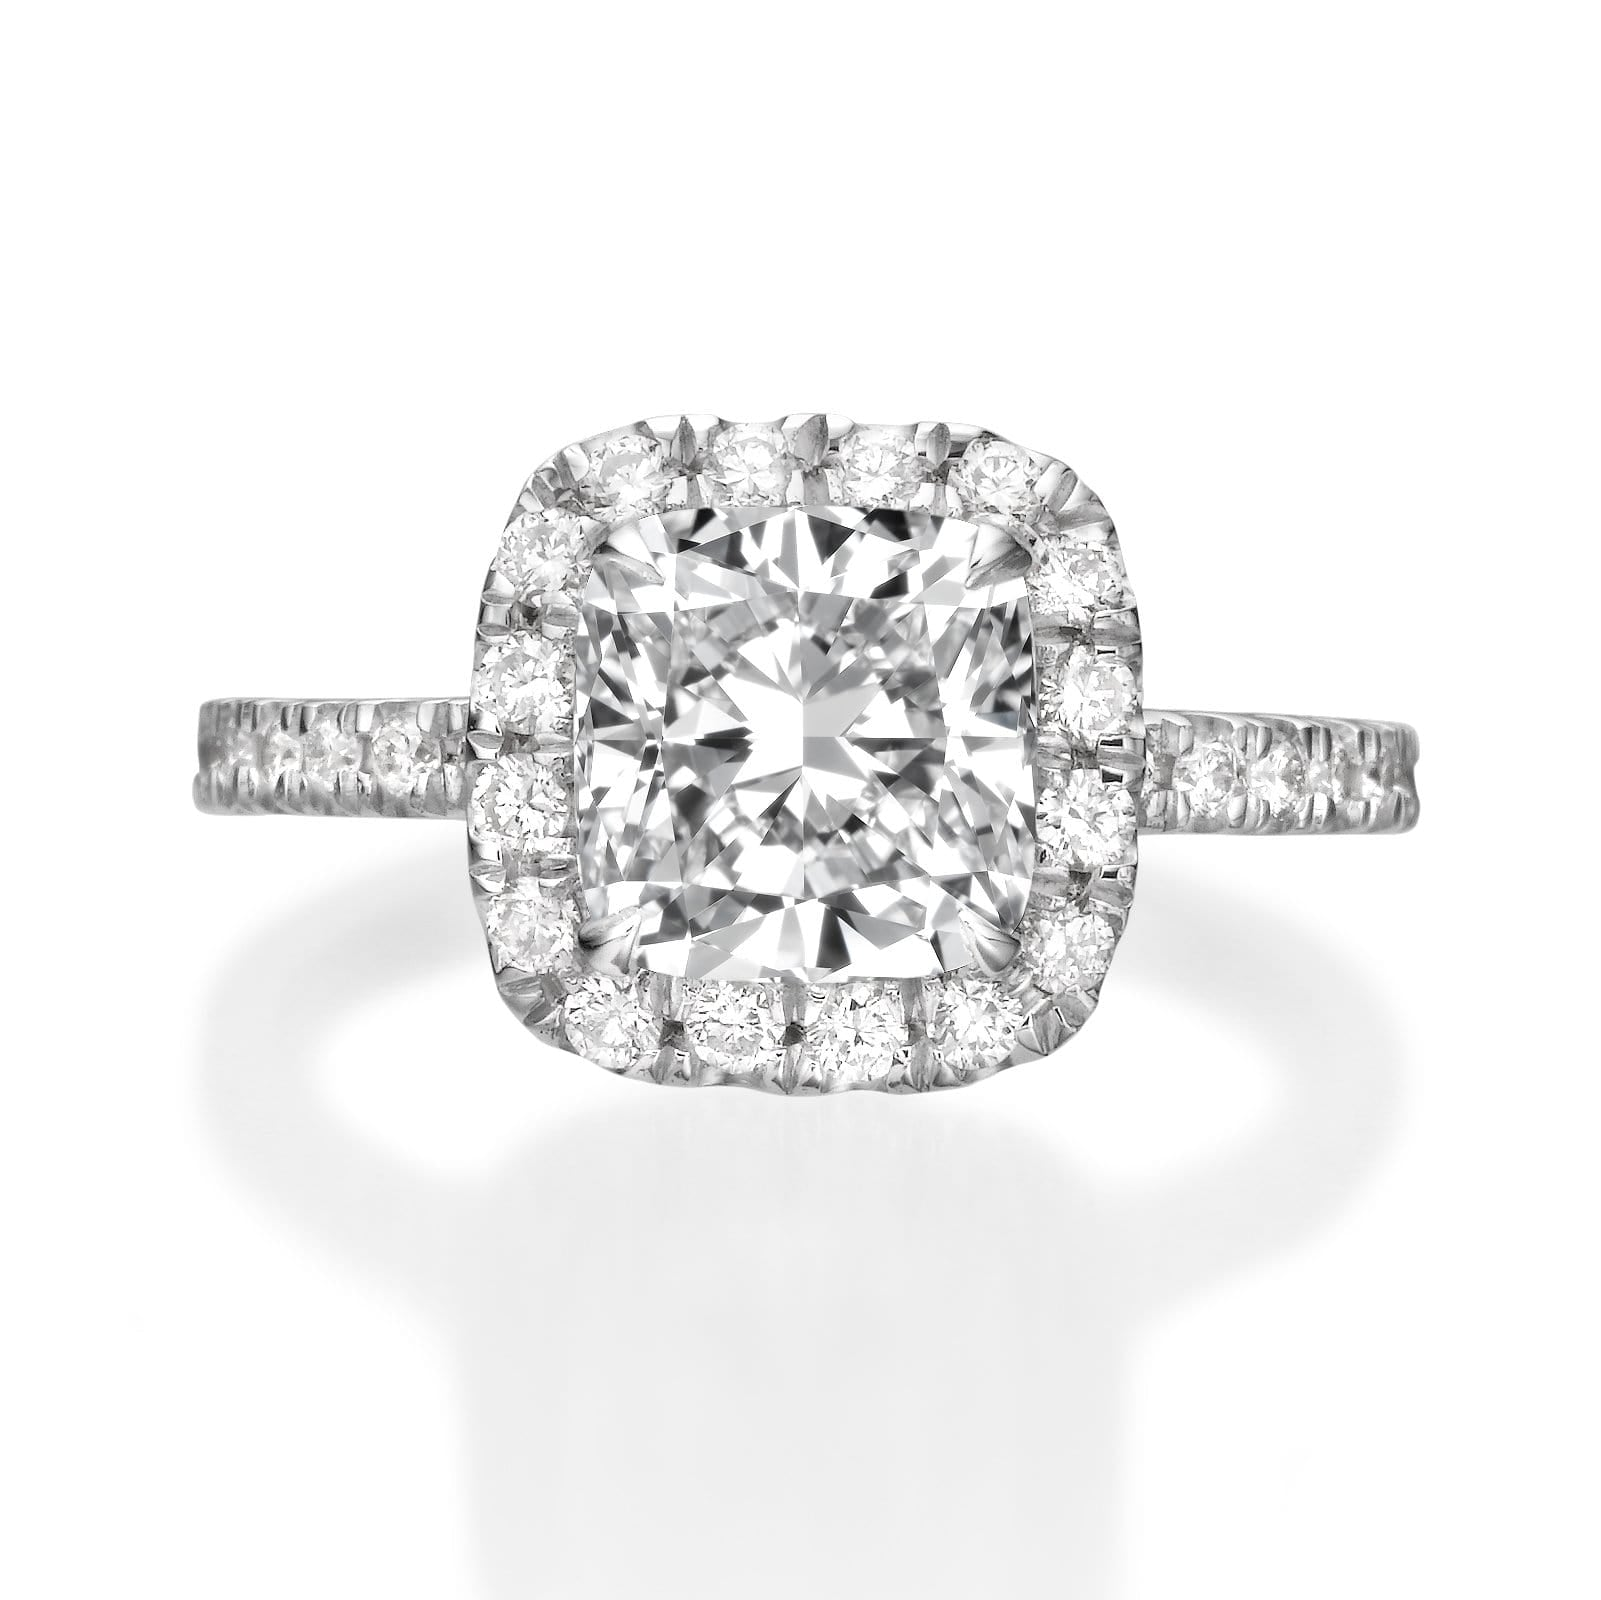 2.76 ct Cushion Cut Diamond Engagement Ring